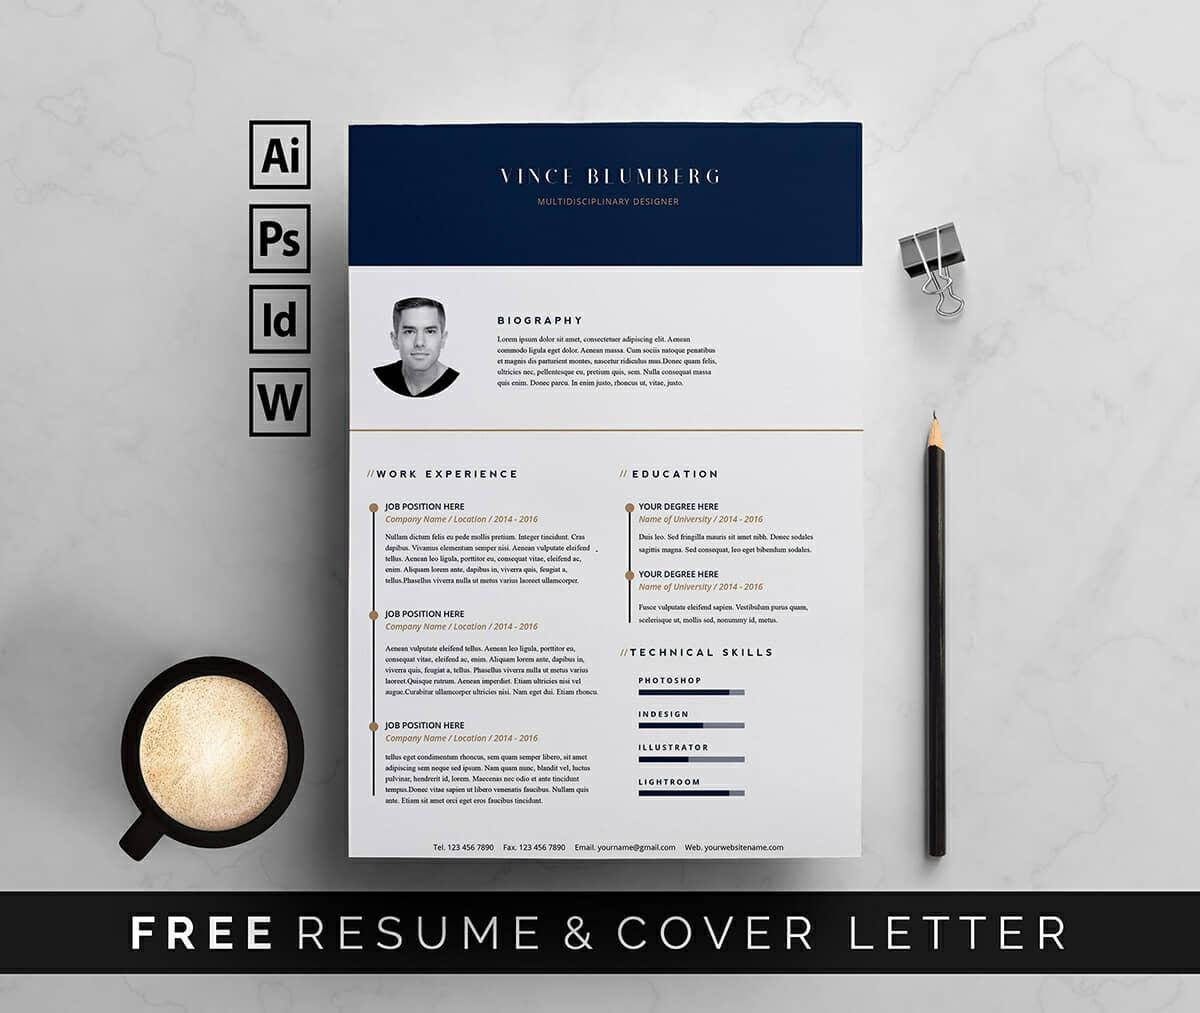 Marvelous Free Elegant Resume Template For Word With Gold Details